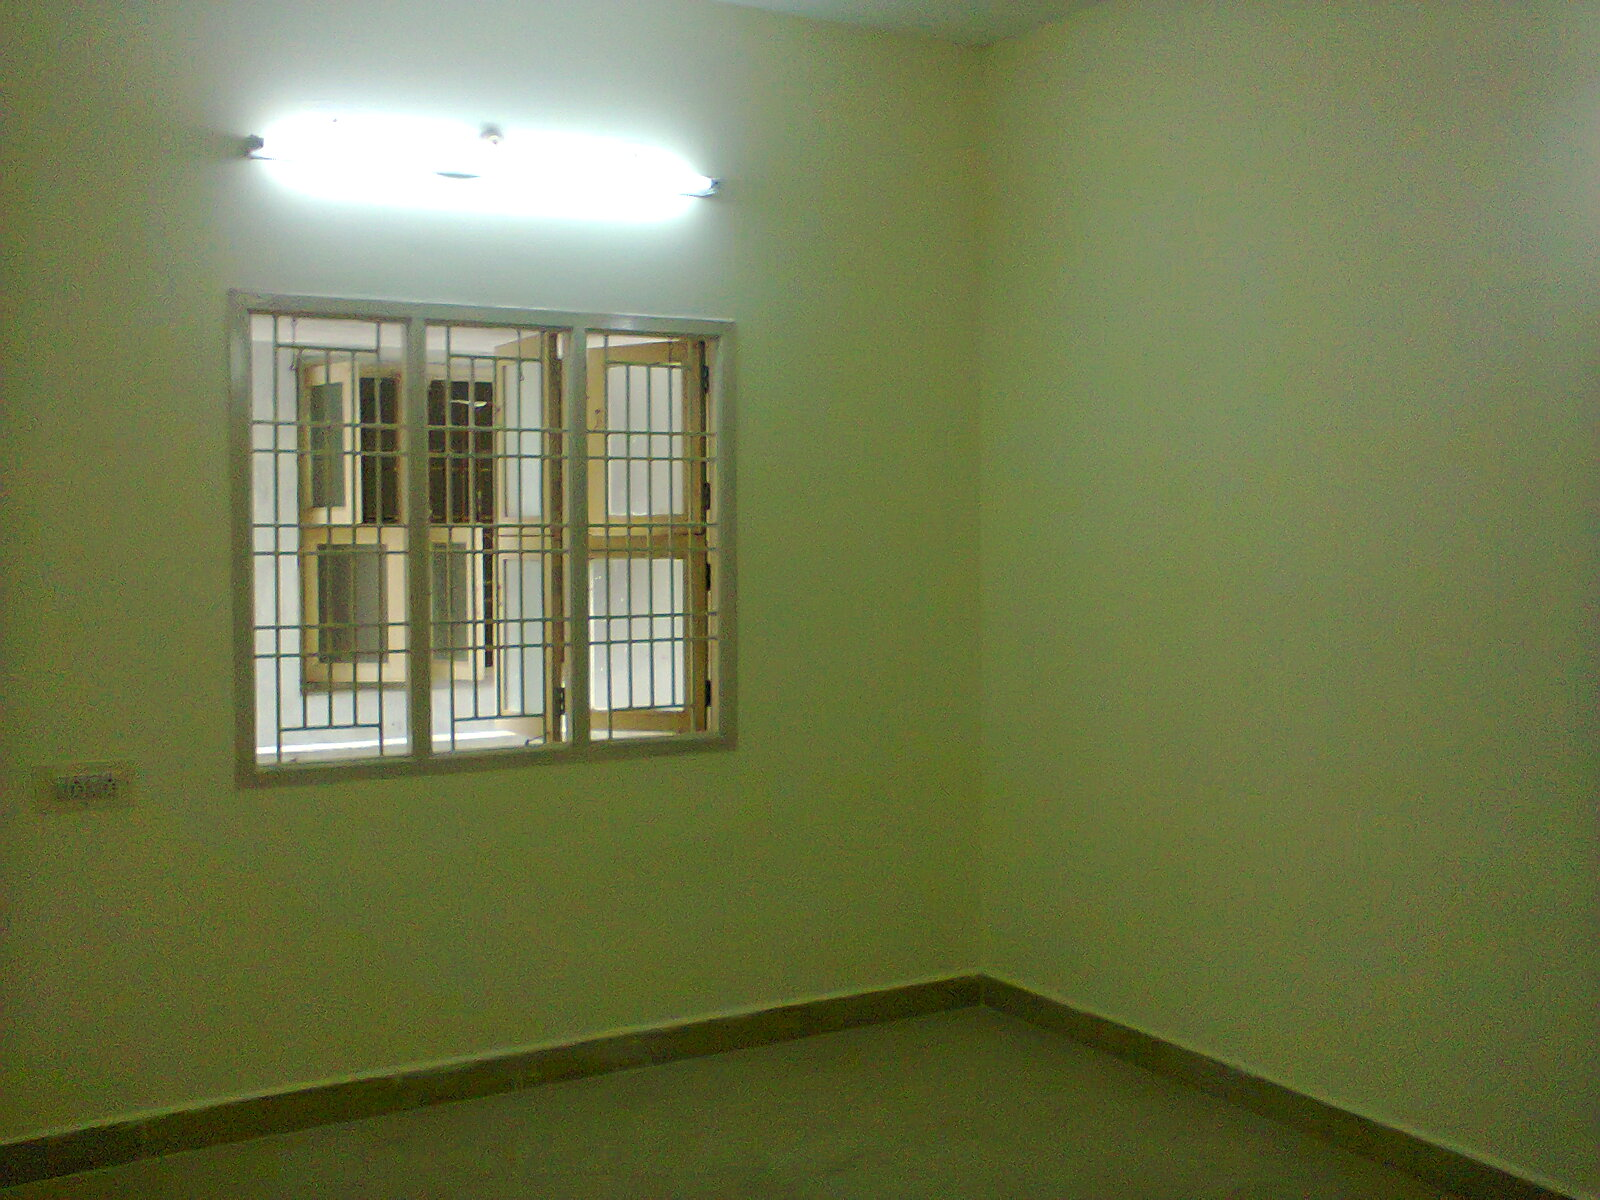 North facing 2BHK Apartment, 1st Floor, thirumali nagar, near zion school with CCP